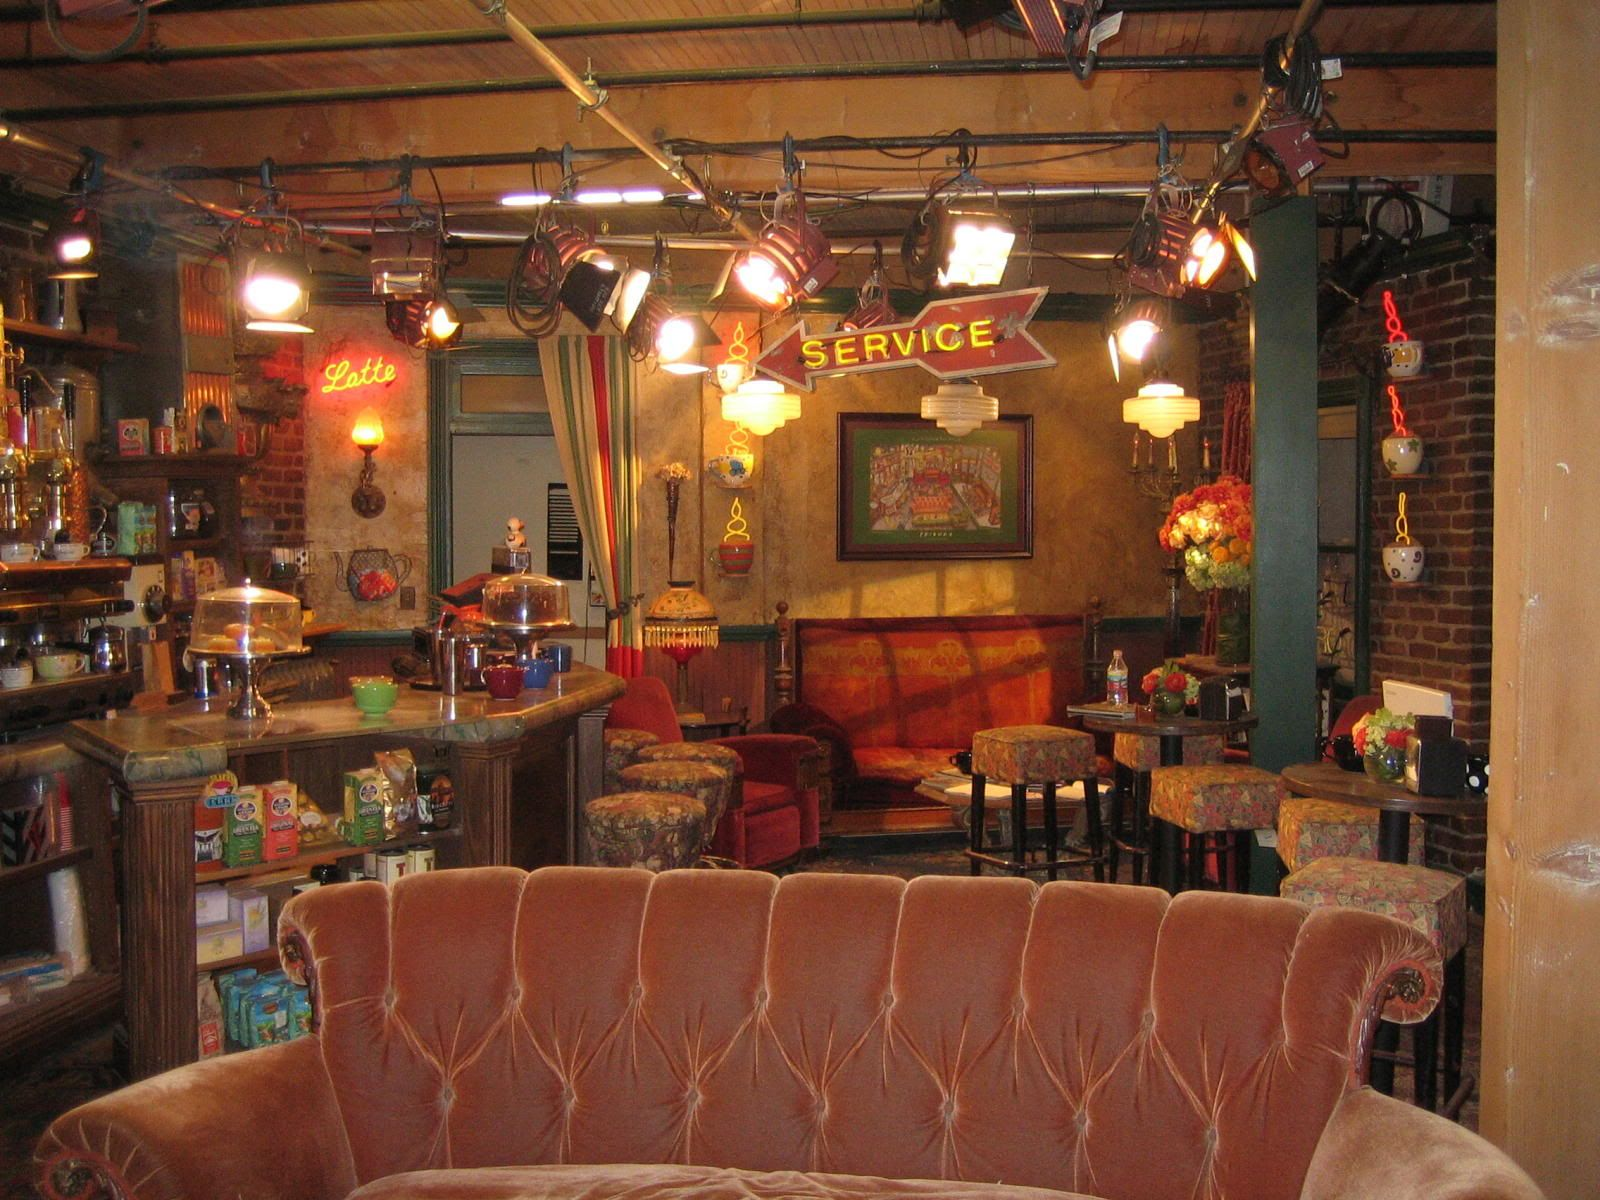 Friends Tv Show Set In Wb Studios Burbank Image